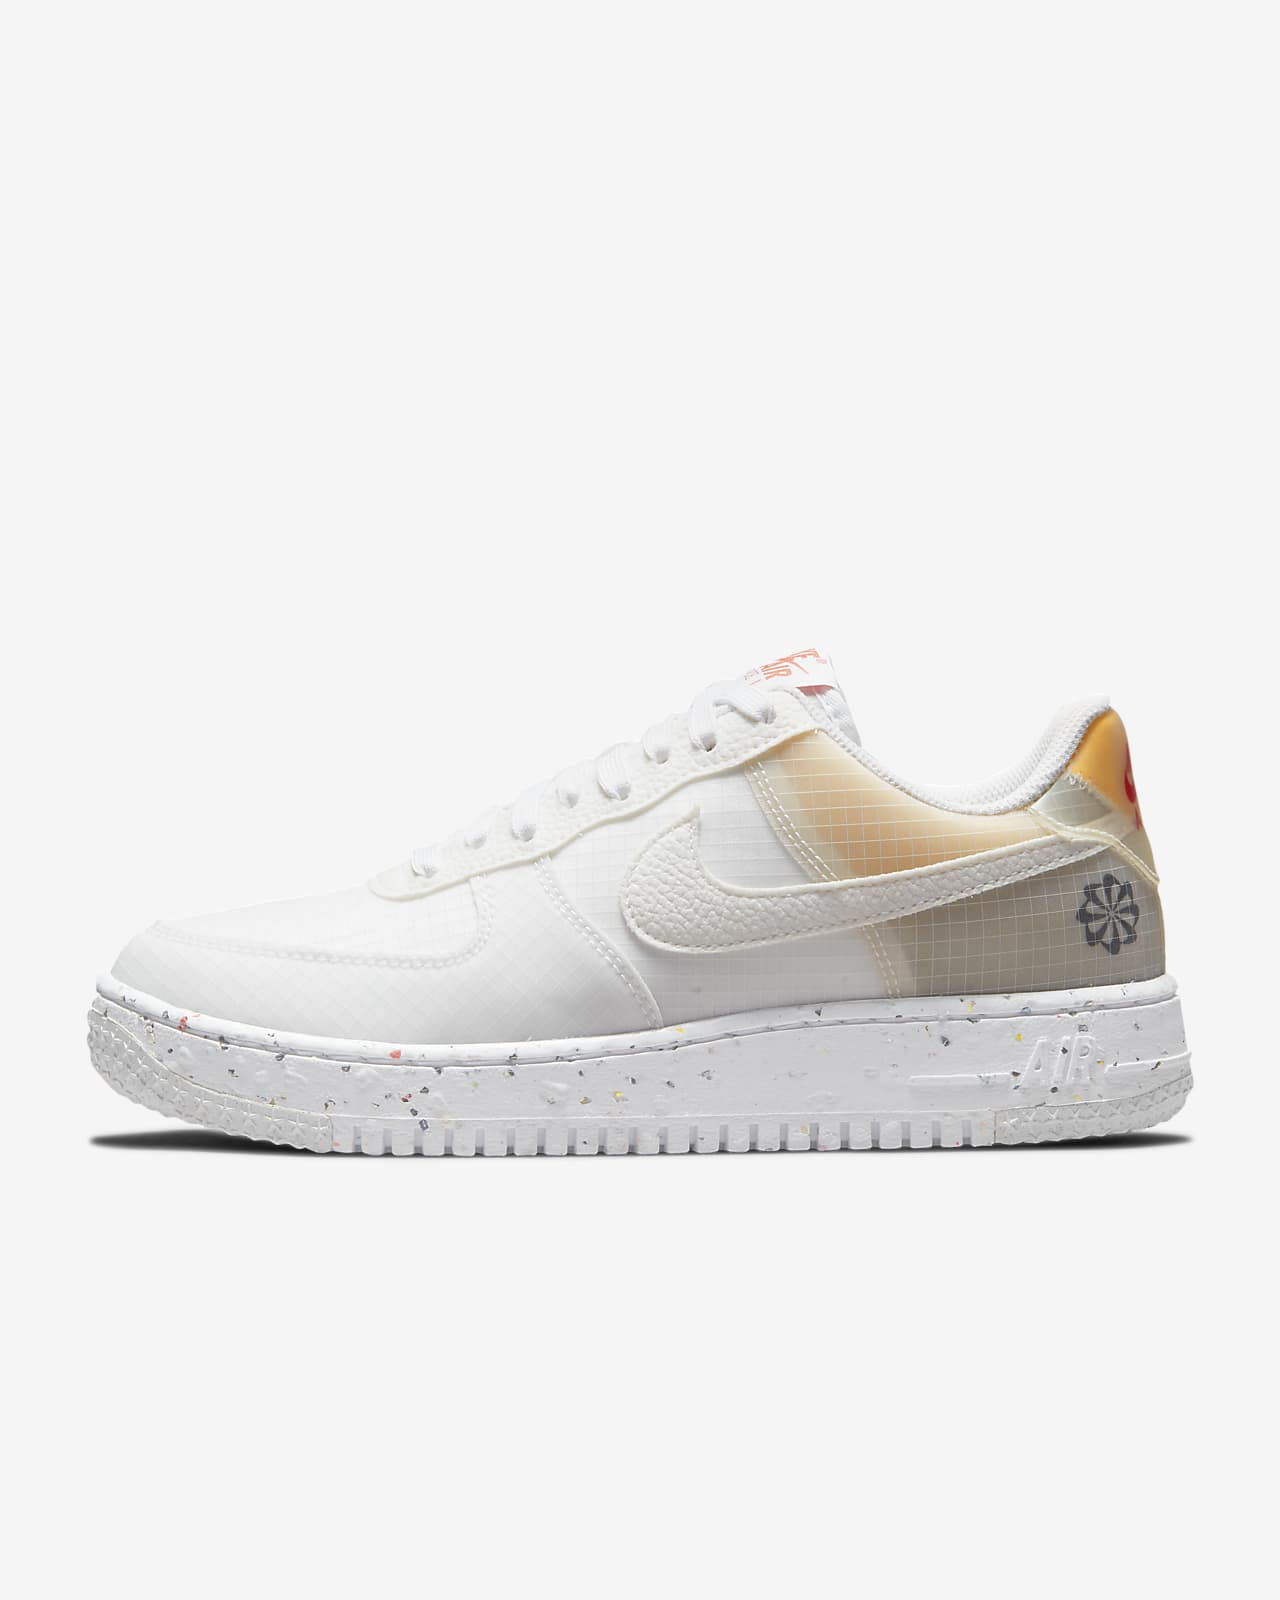 Chaussure Nike Air Force 1 Crater pour Femme